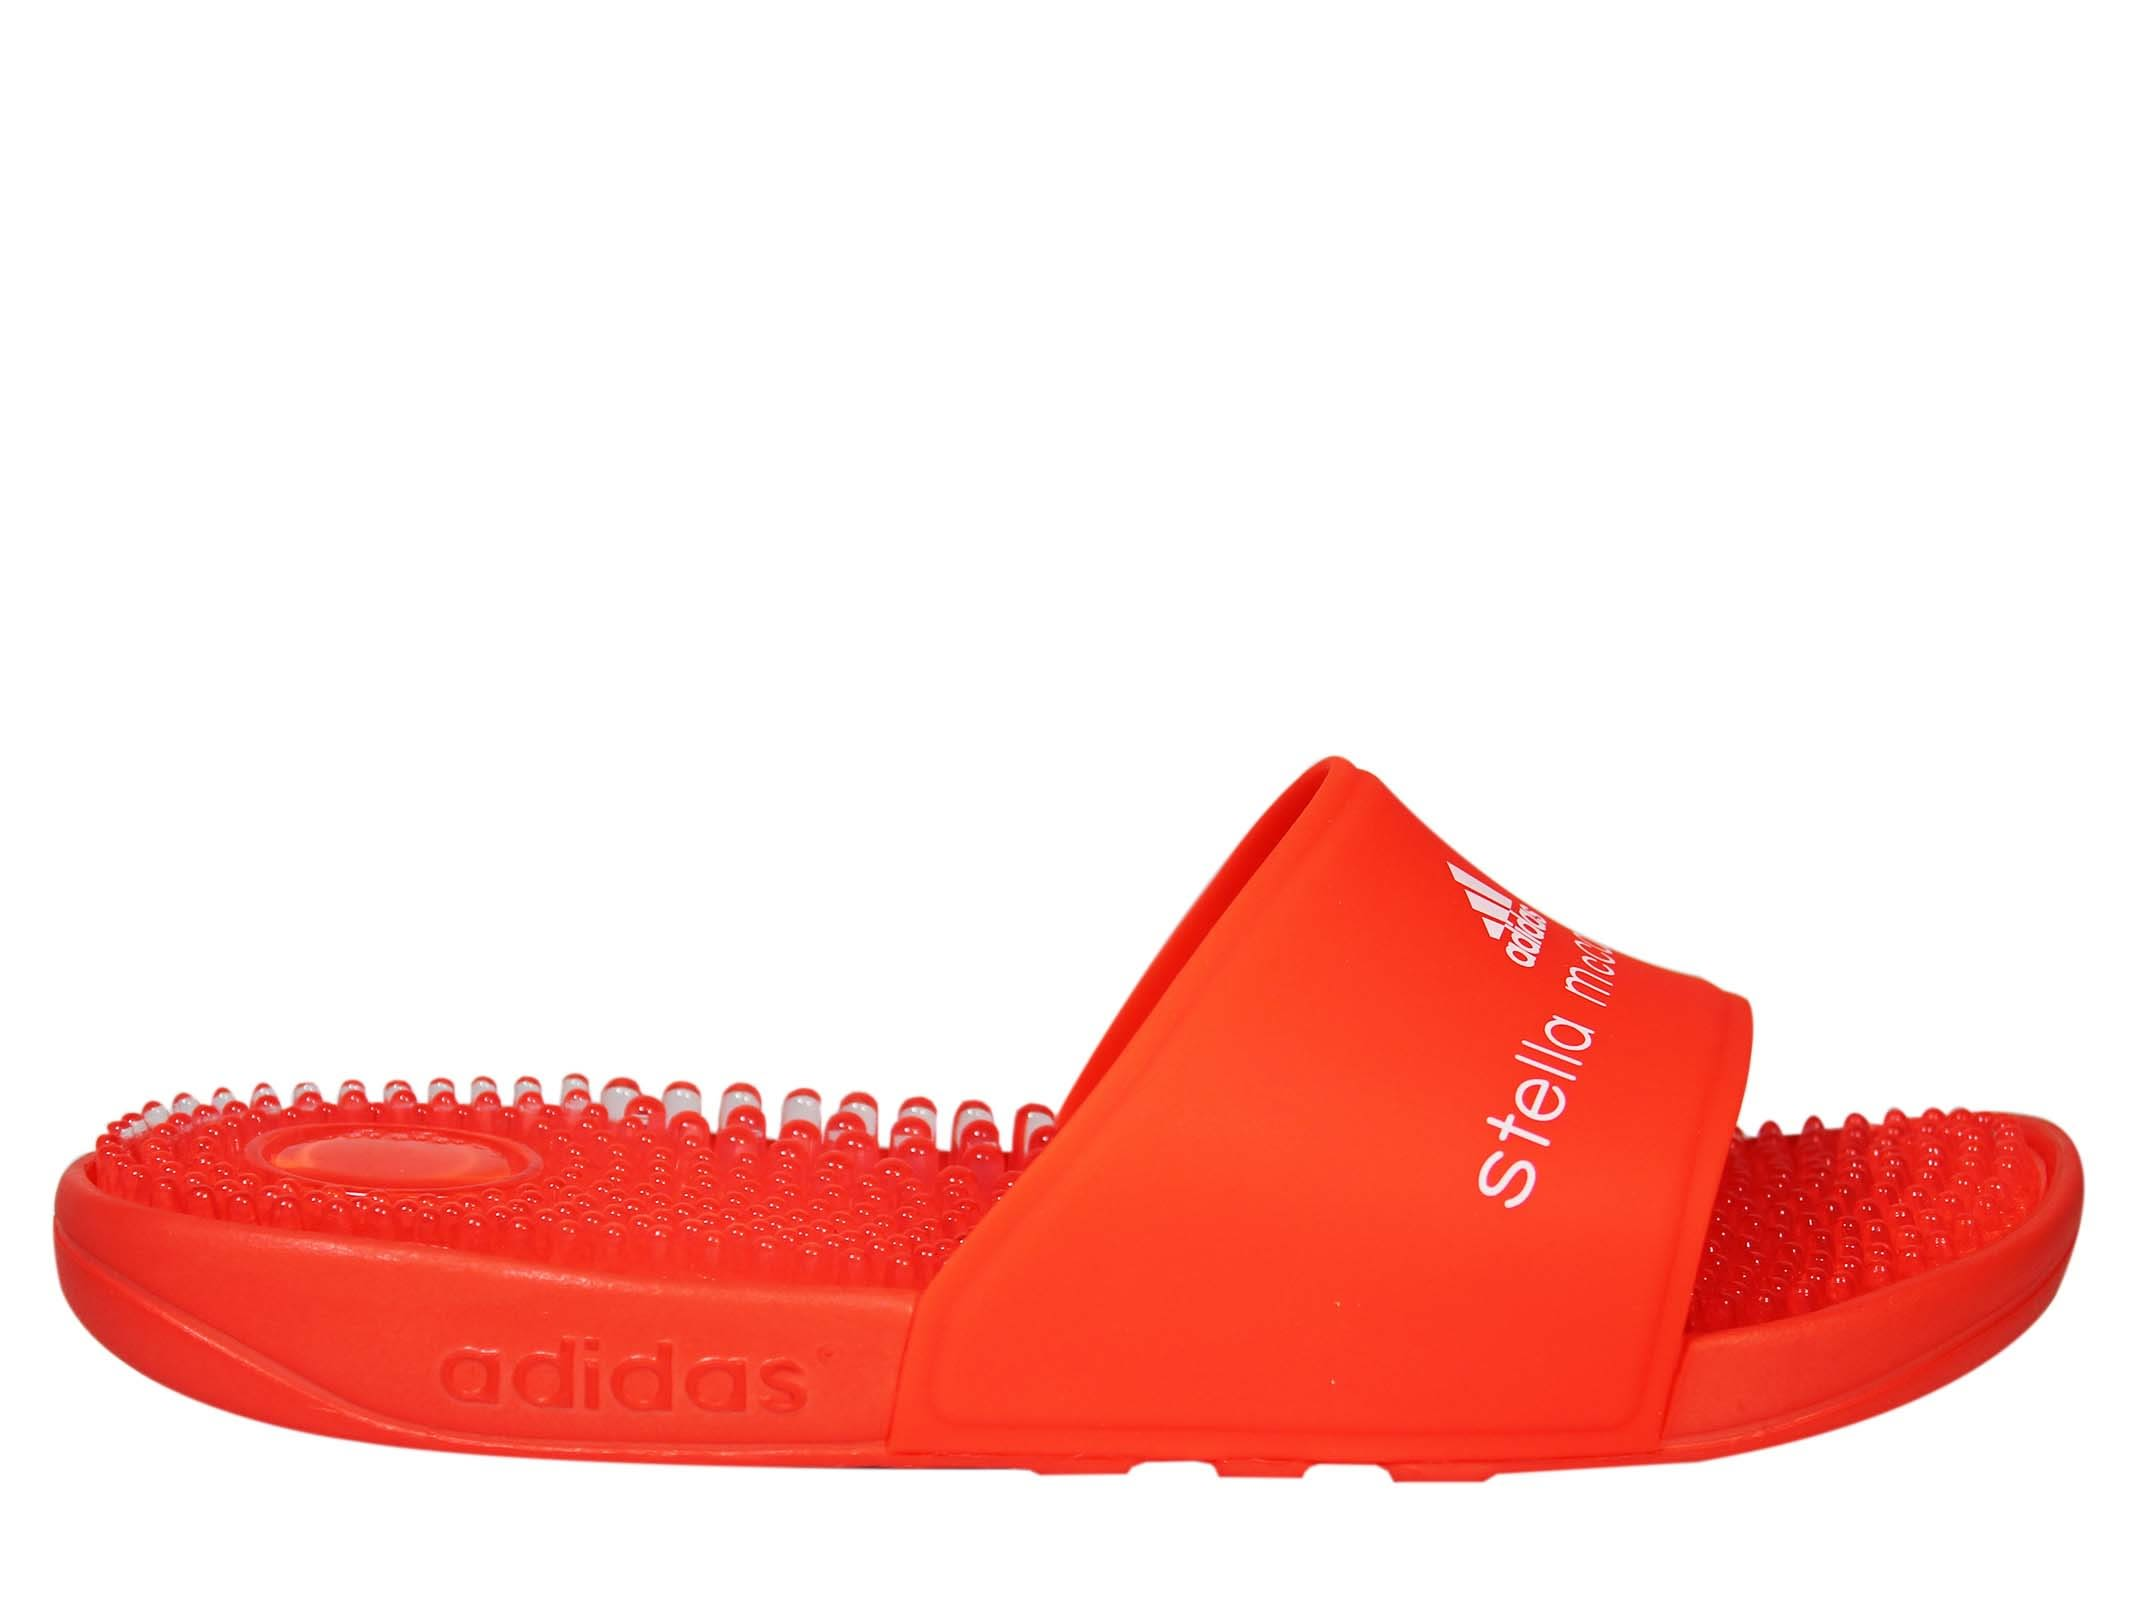 Adidas by Stella McCartney Red Adissage Sliders